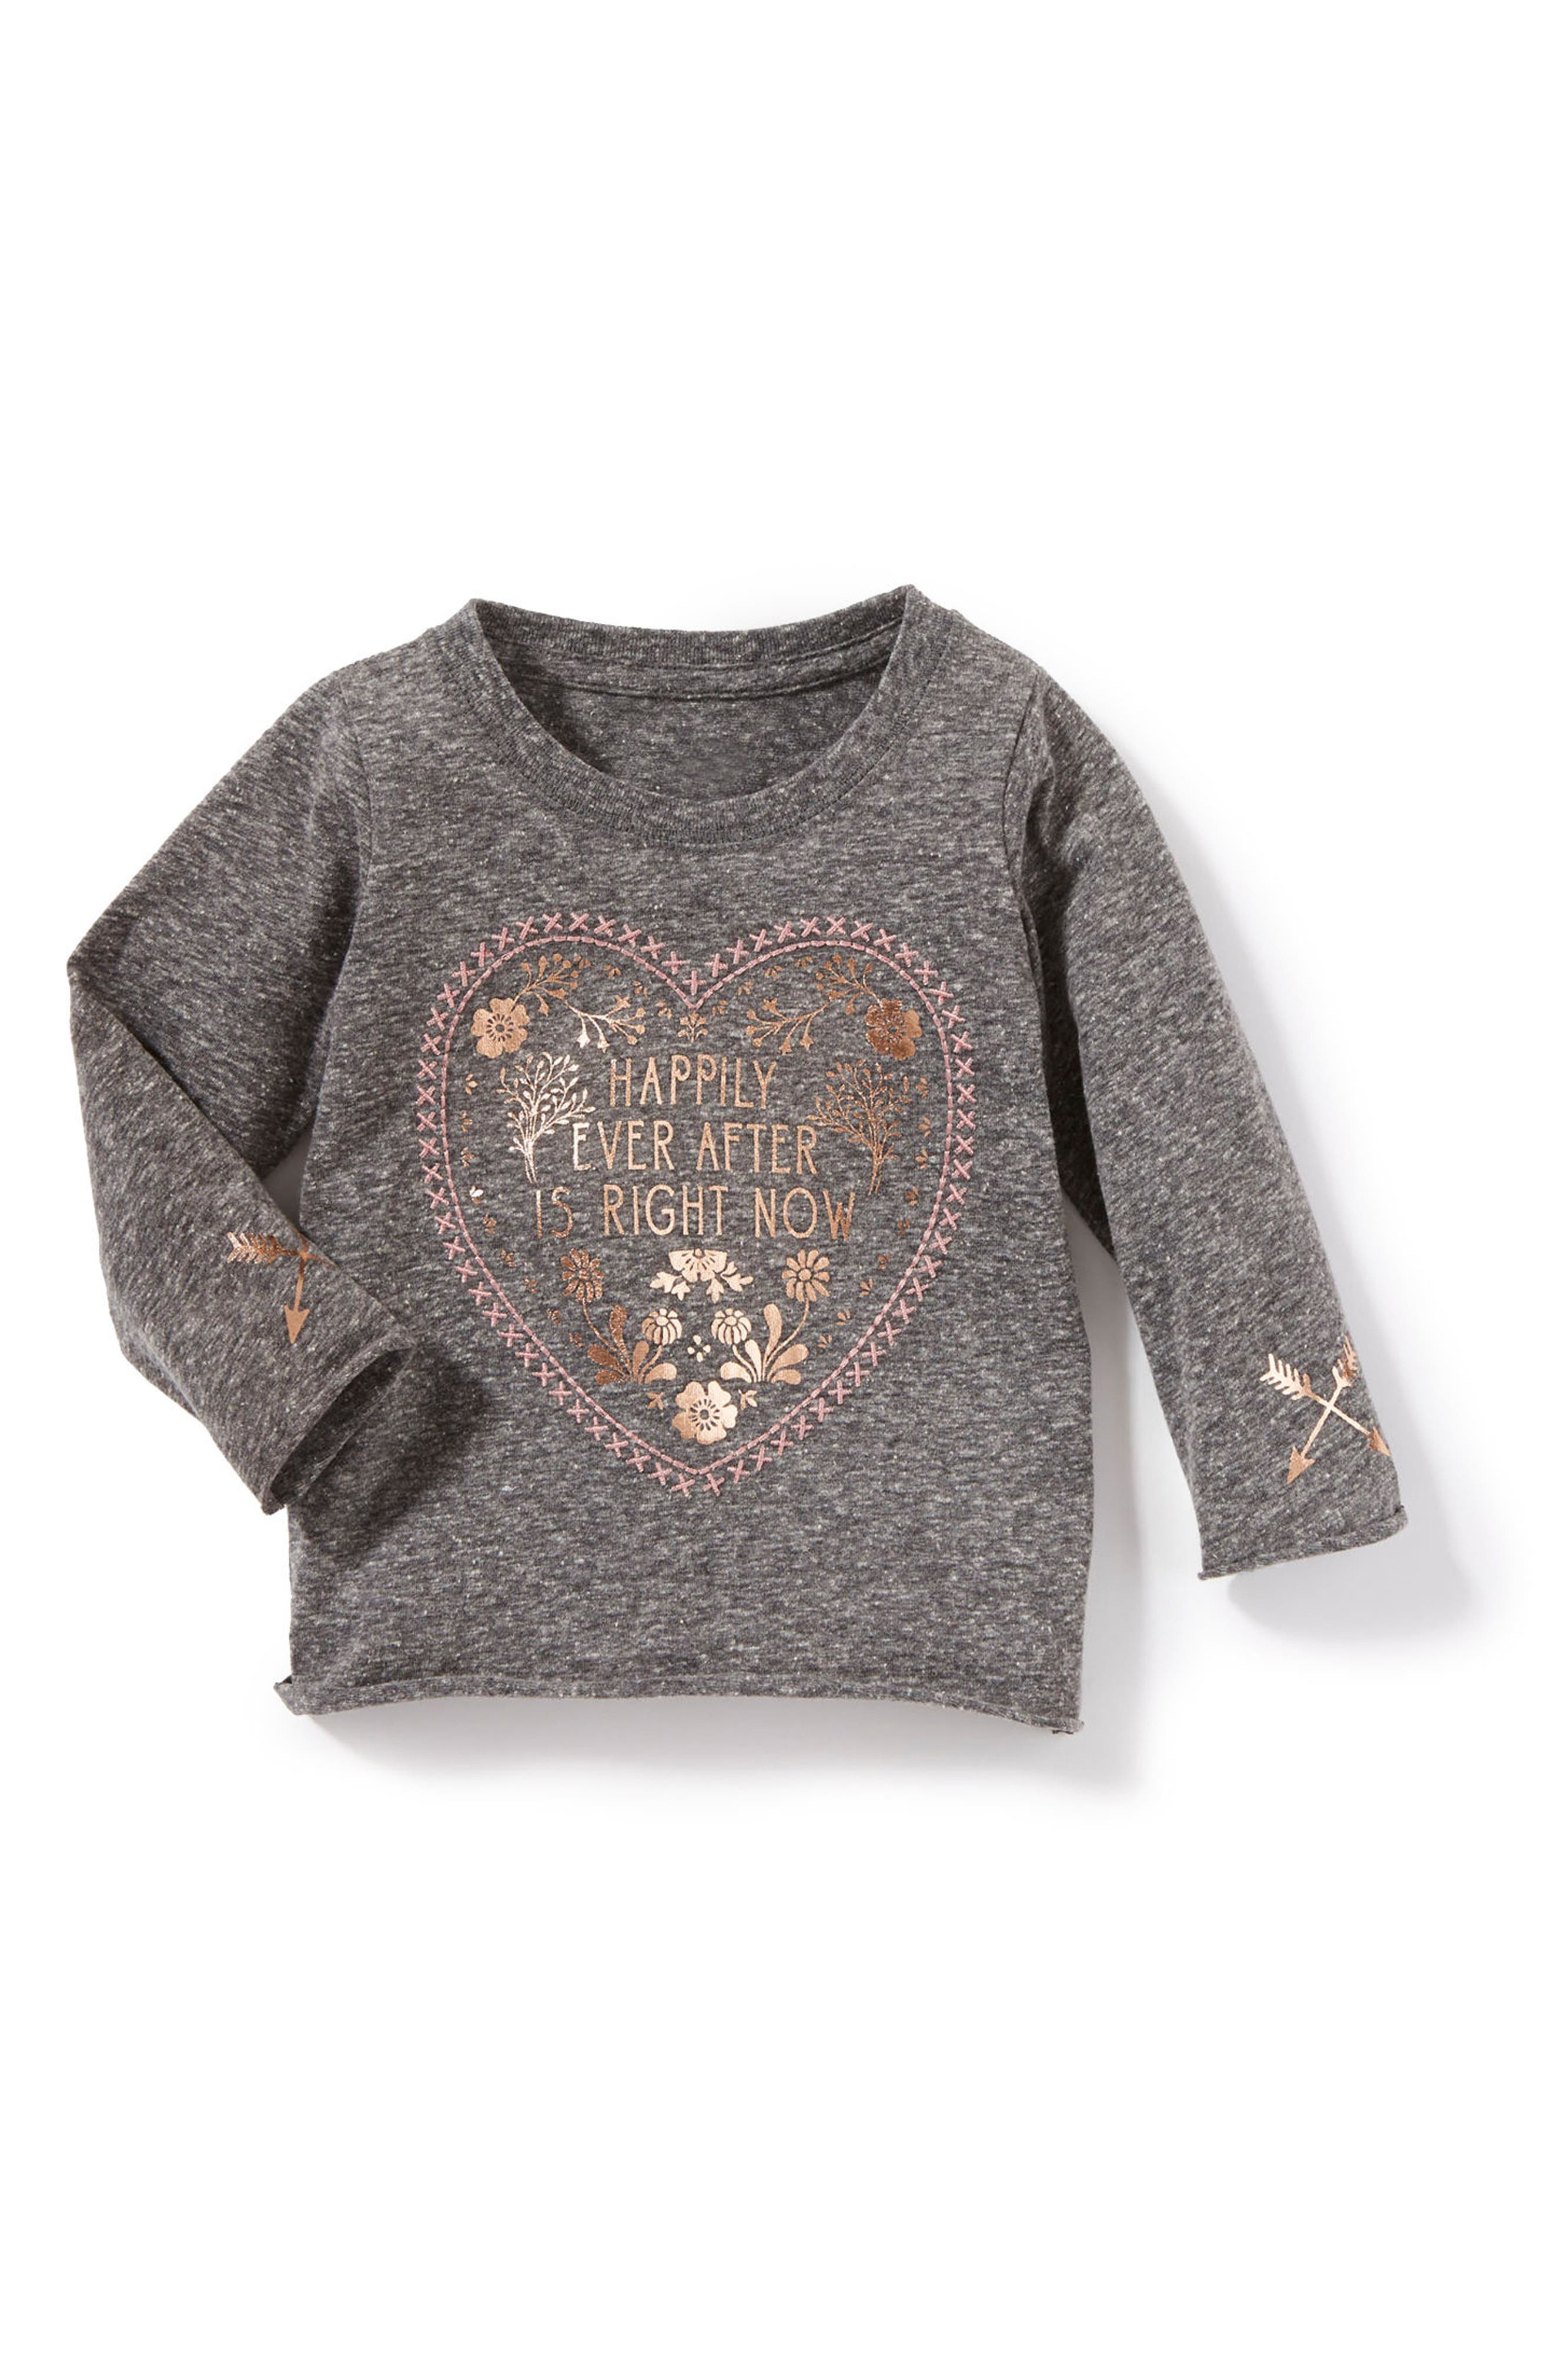 Peek Happily Ever After Graphic Tee (Baby Girls)